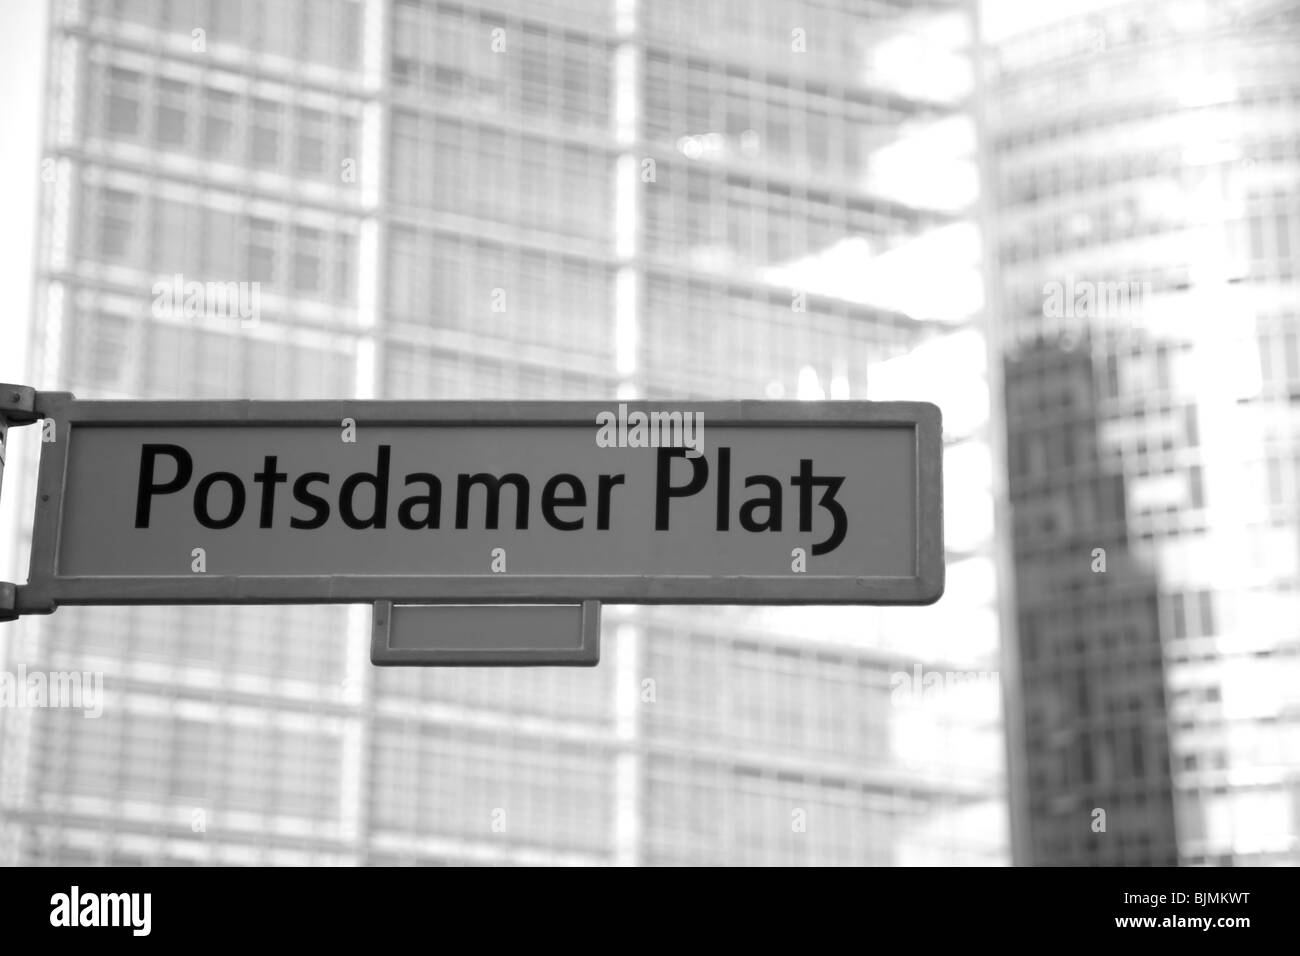 Sign 'Potsdamer Platz' square, black and white, Berlin, Germany, Europe - Stock Image